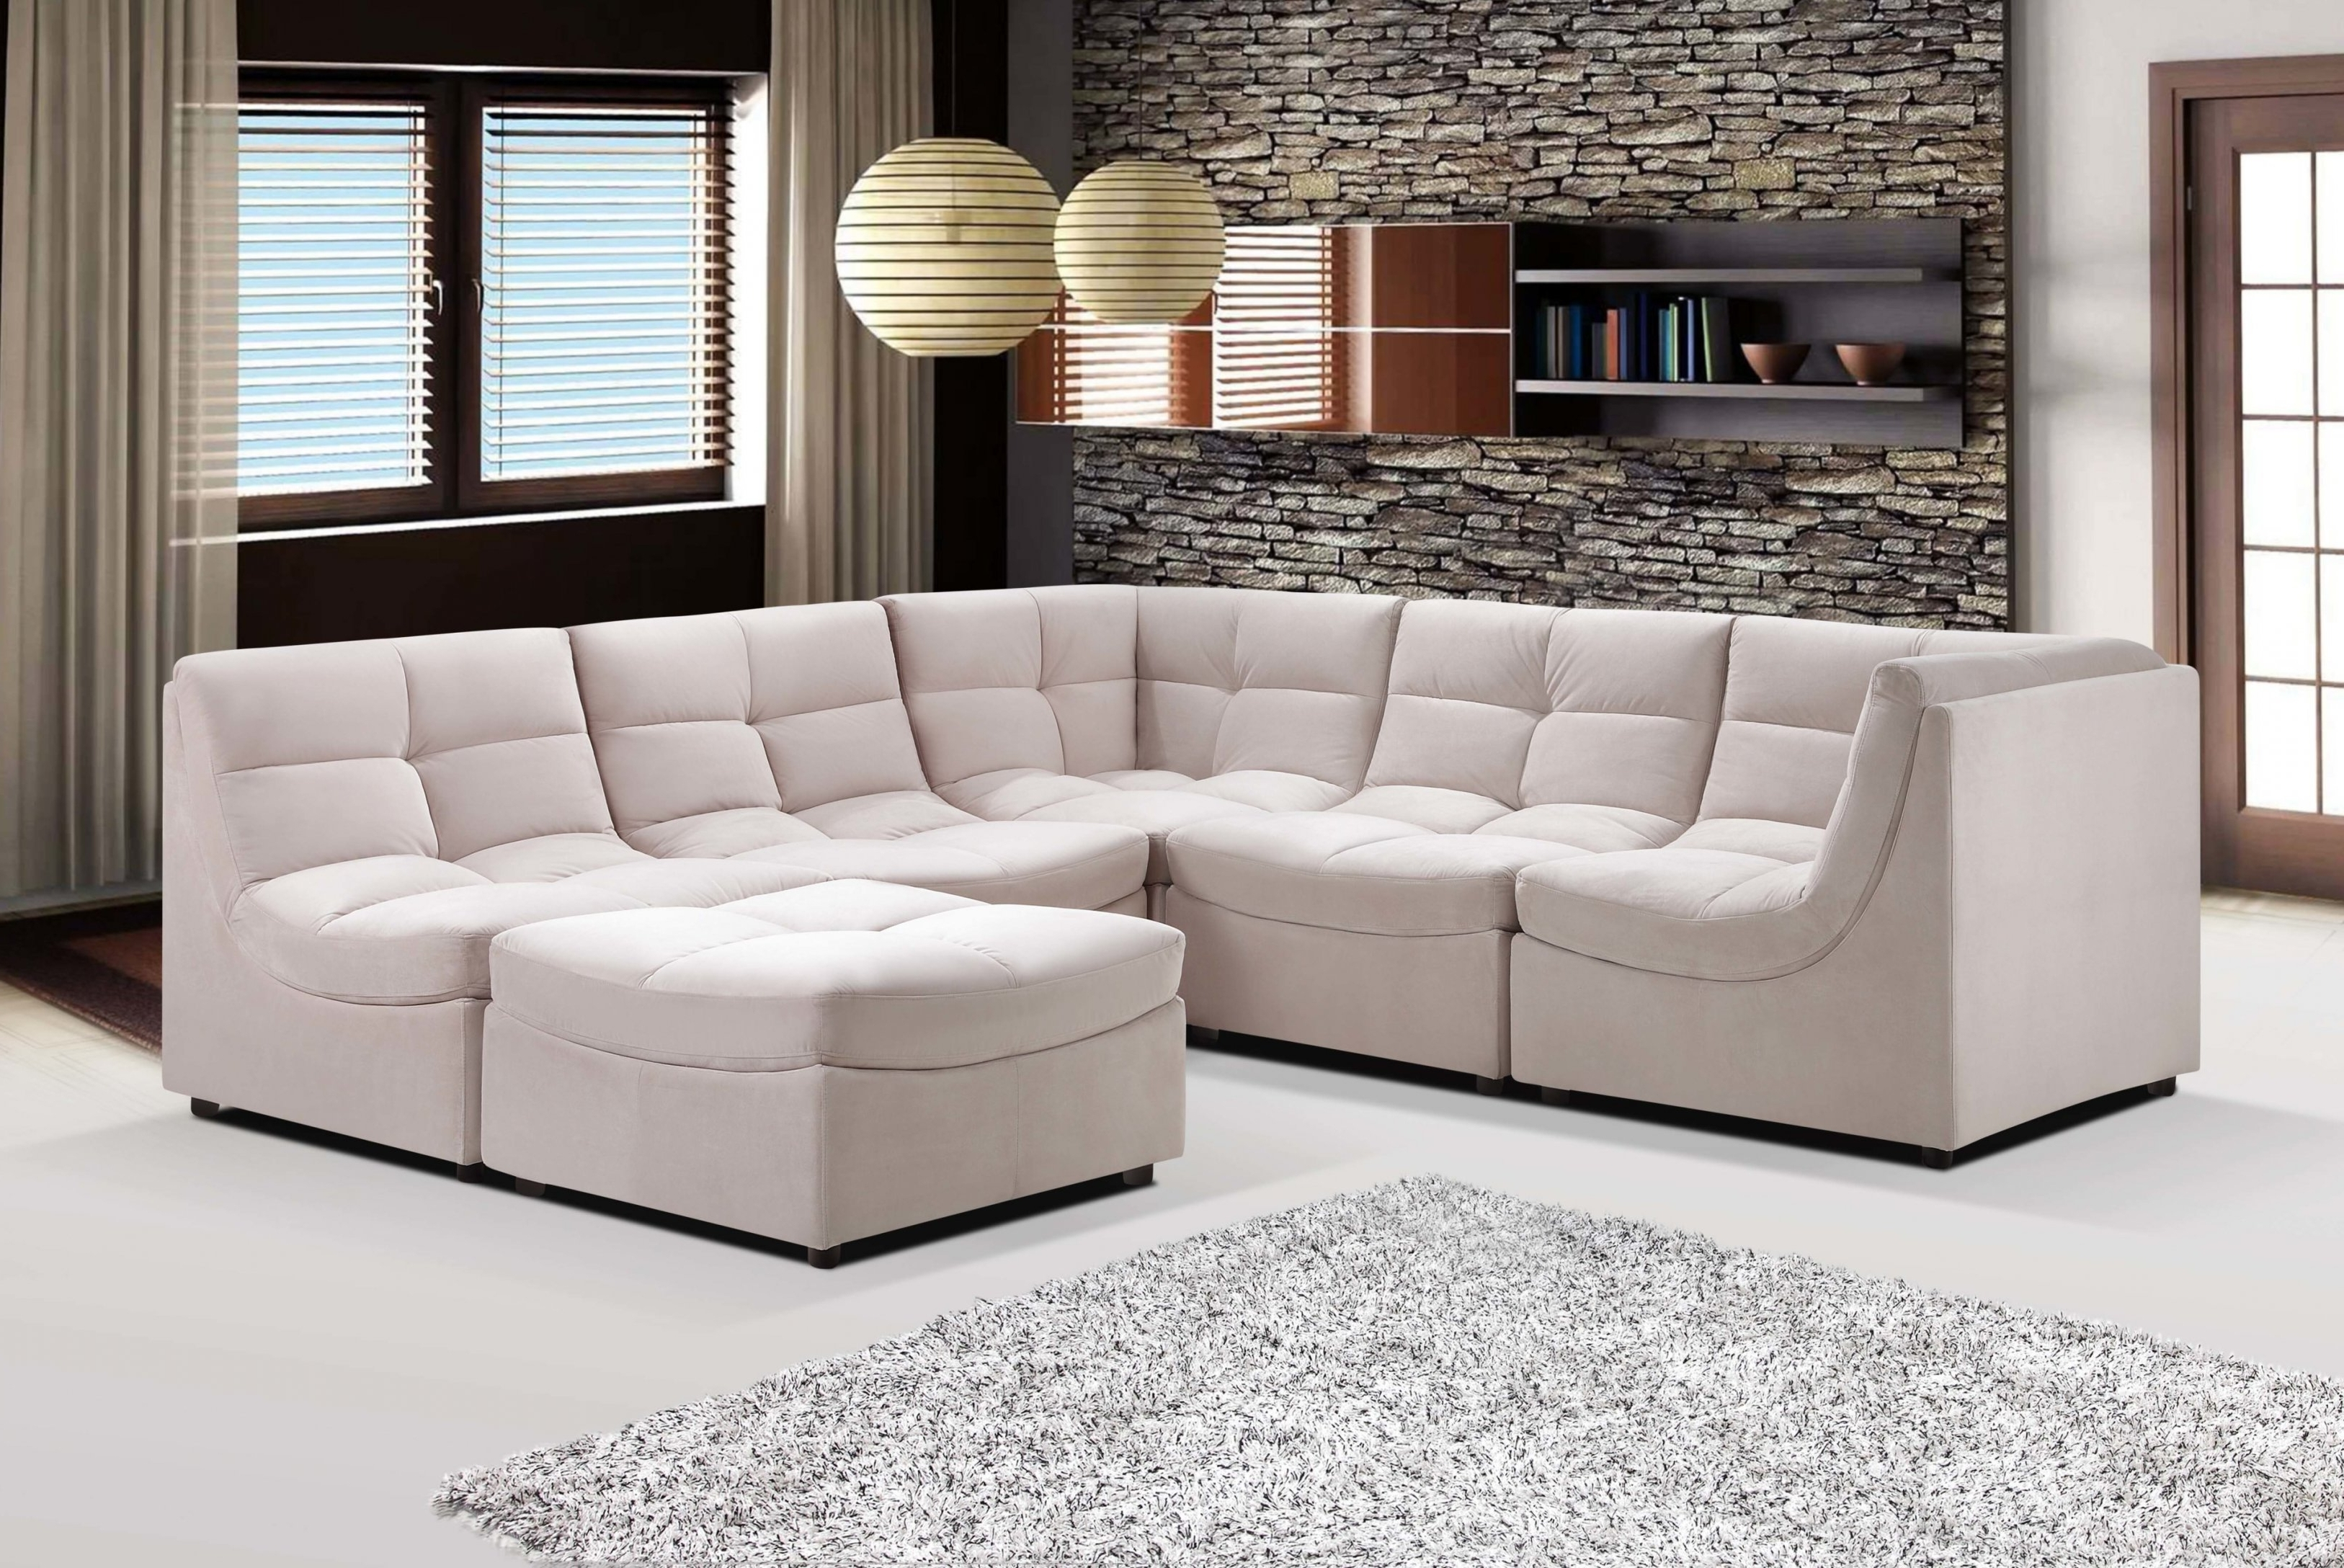 Fashionable Modular Sectional Sofas In Small Modular Sectional Sofa 21 For Your Sofa Sectionals For Cloud (View 6 of 20)